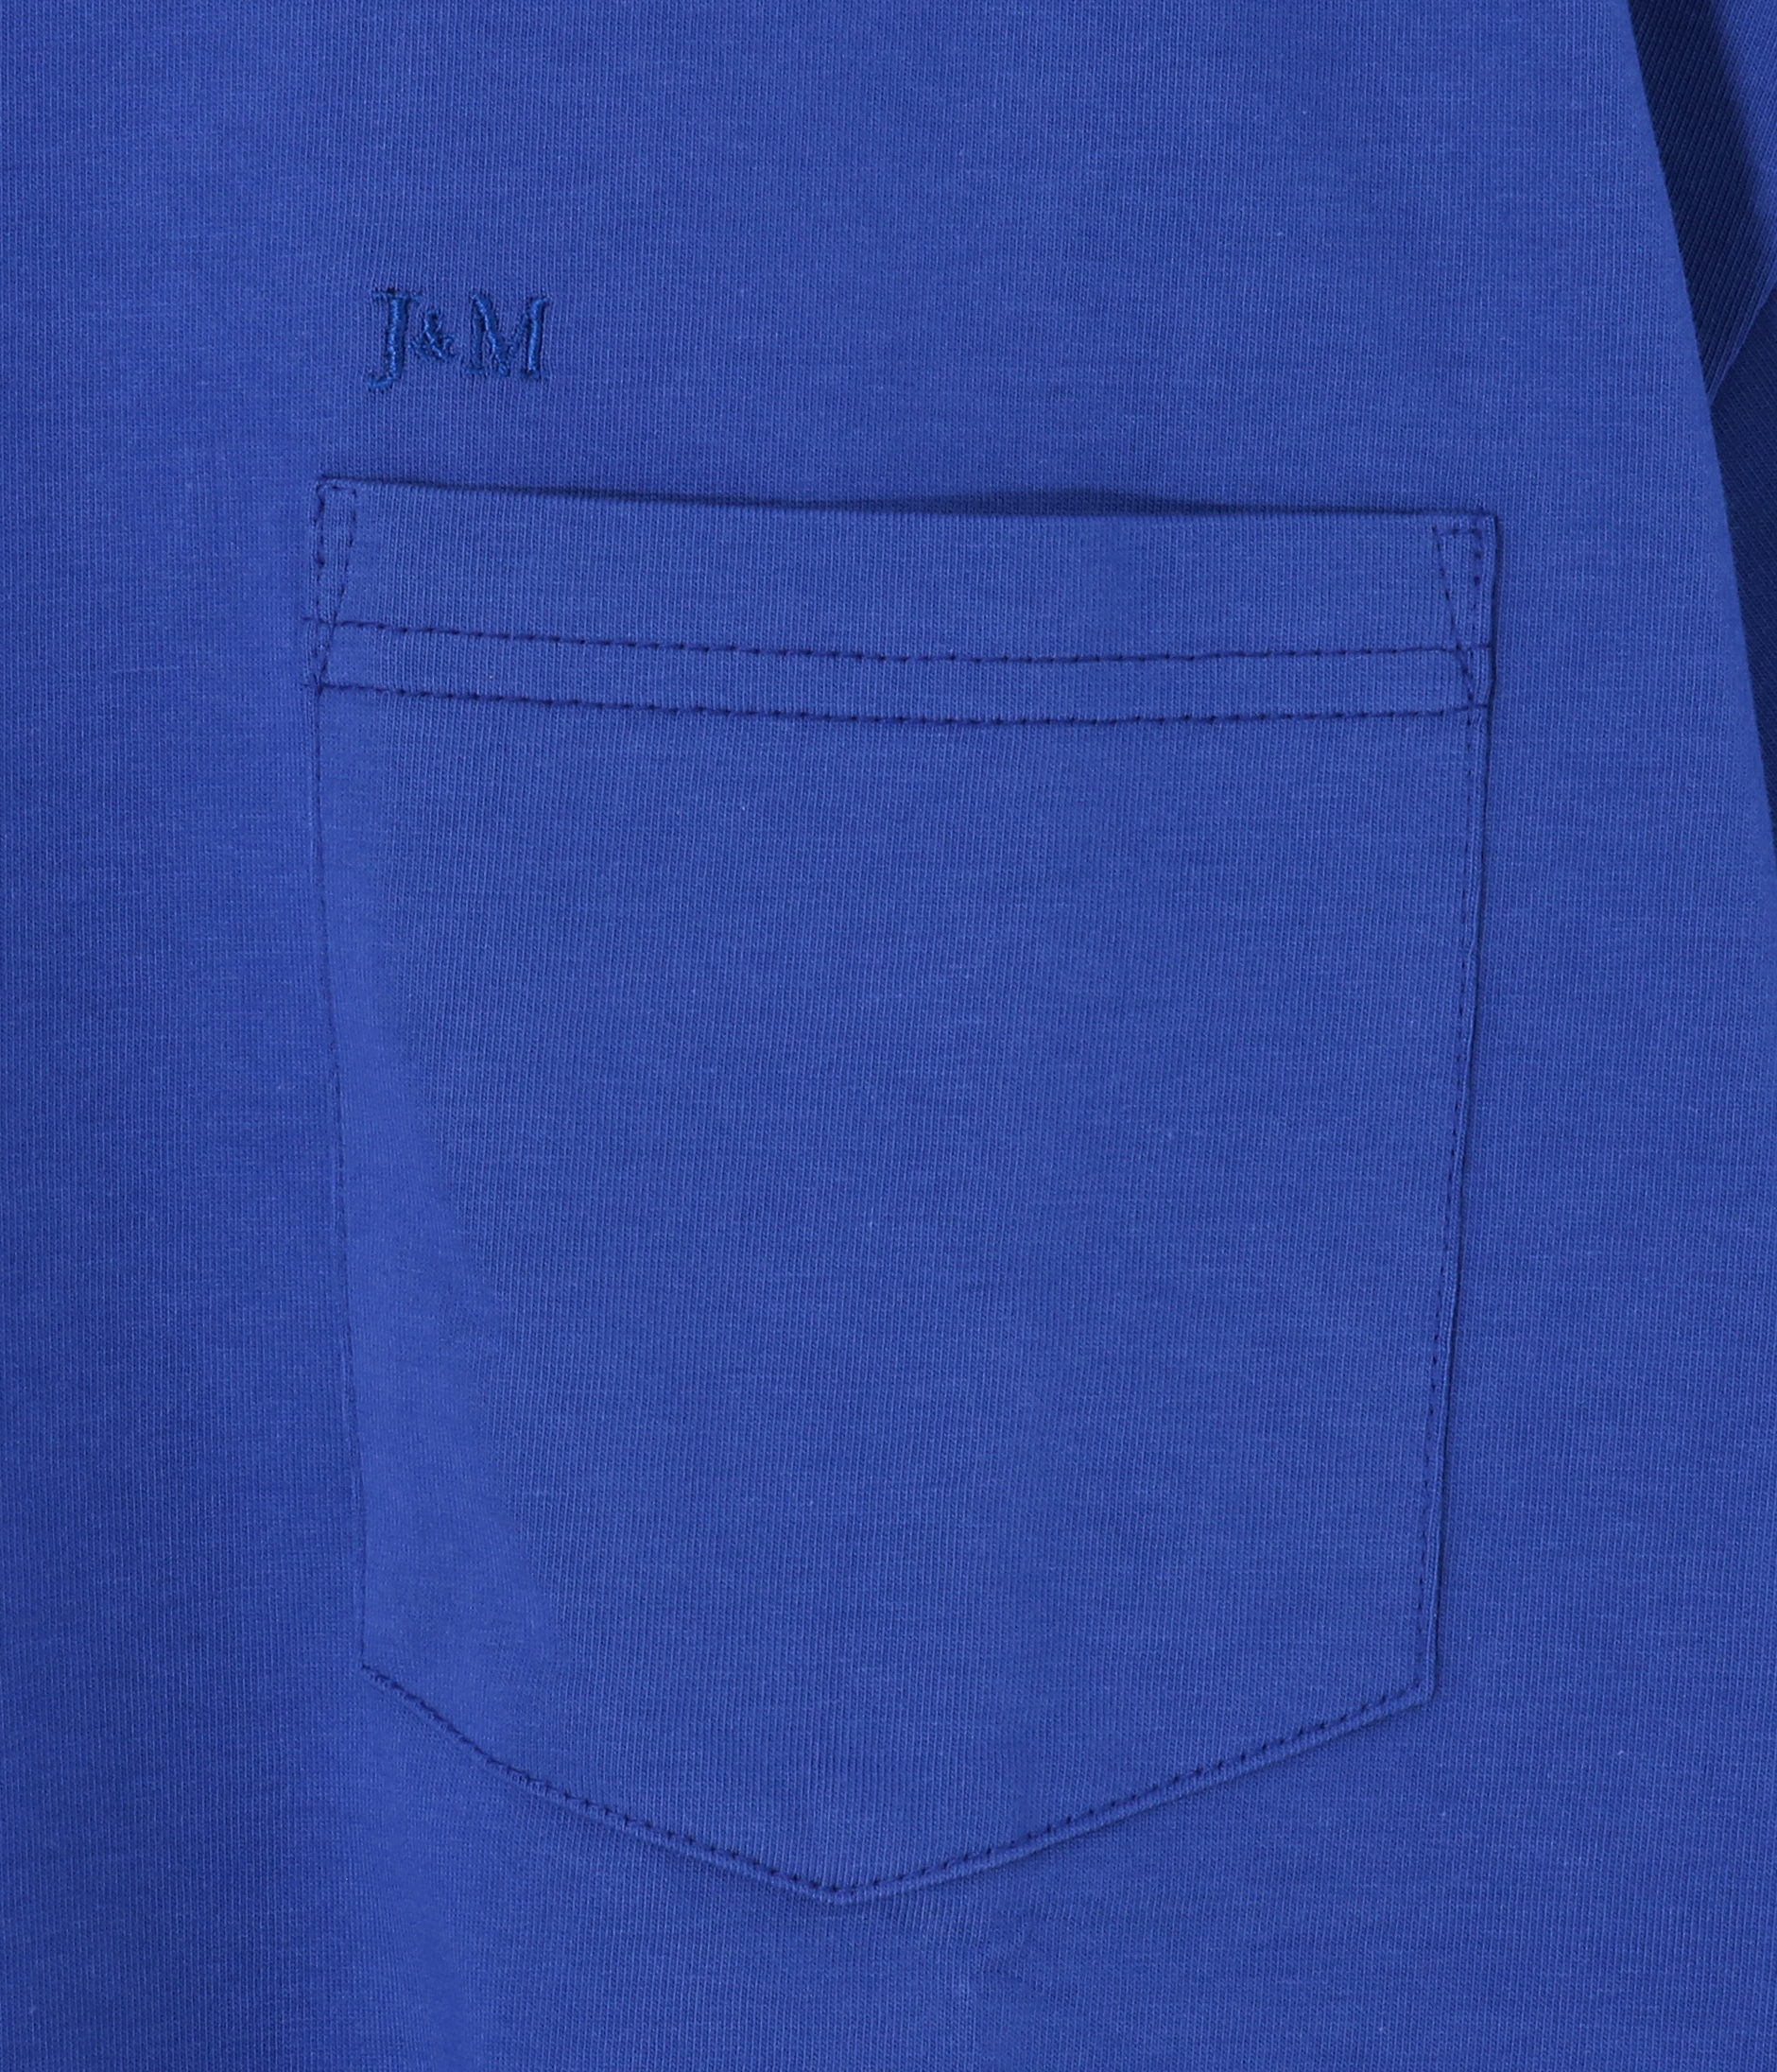 OVERSIZED T-SHIRT 詳細画像 ELECTRIC BLUE 6